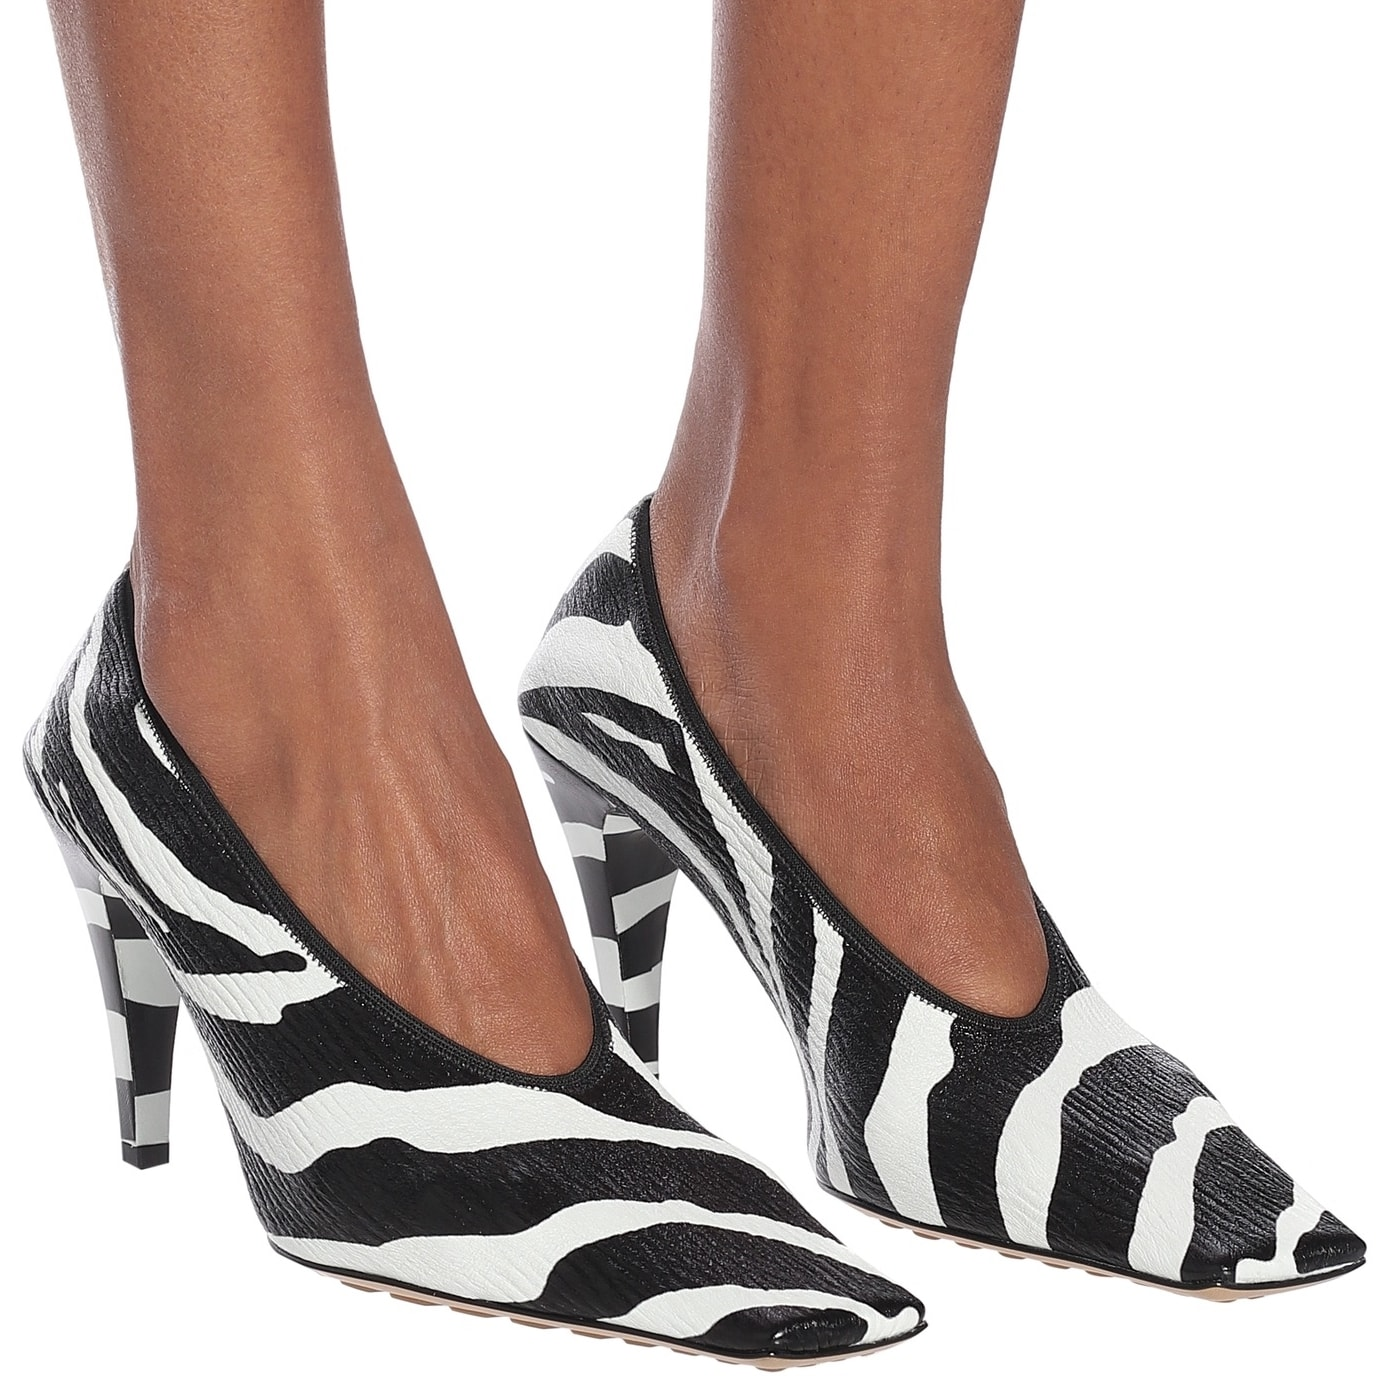 Presented in an of-the-moment zebra stripe, this pump is made in the label's native Italy from crinkled leather with a statement square toe and an elasticated topline that ensures a snug fit